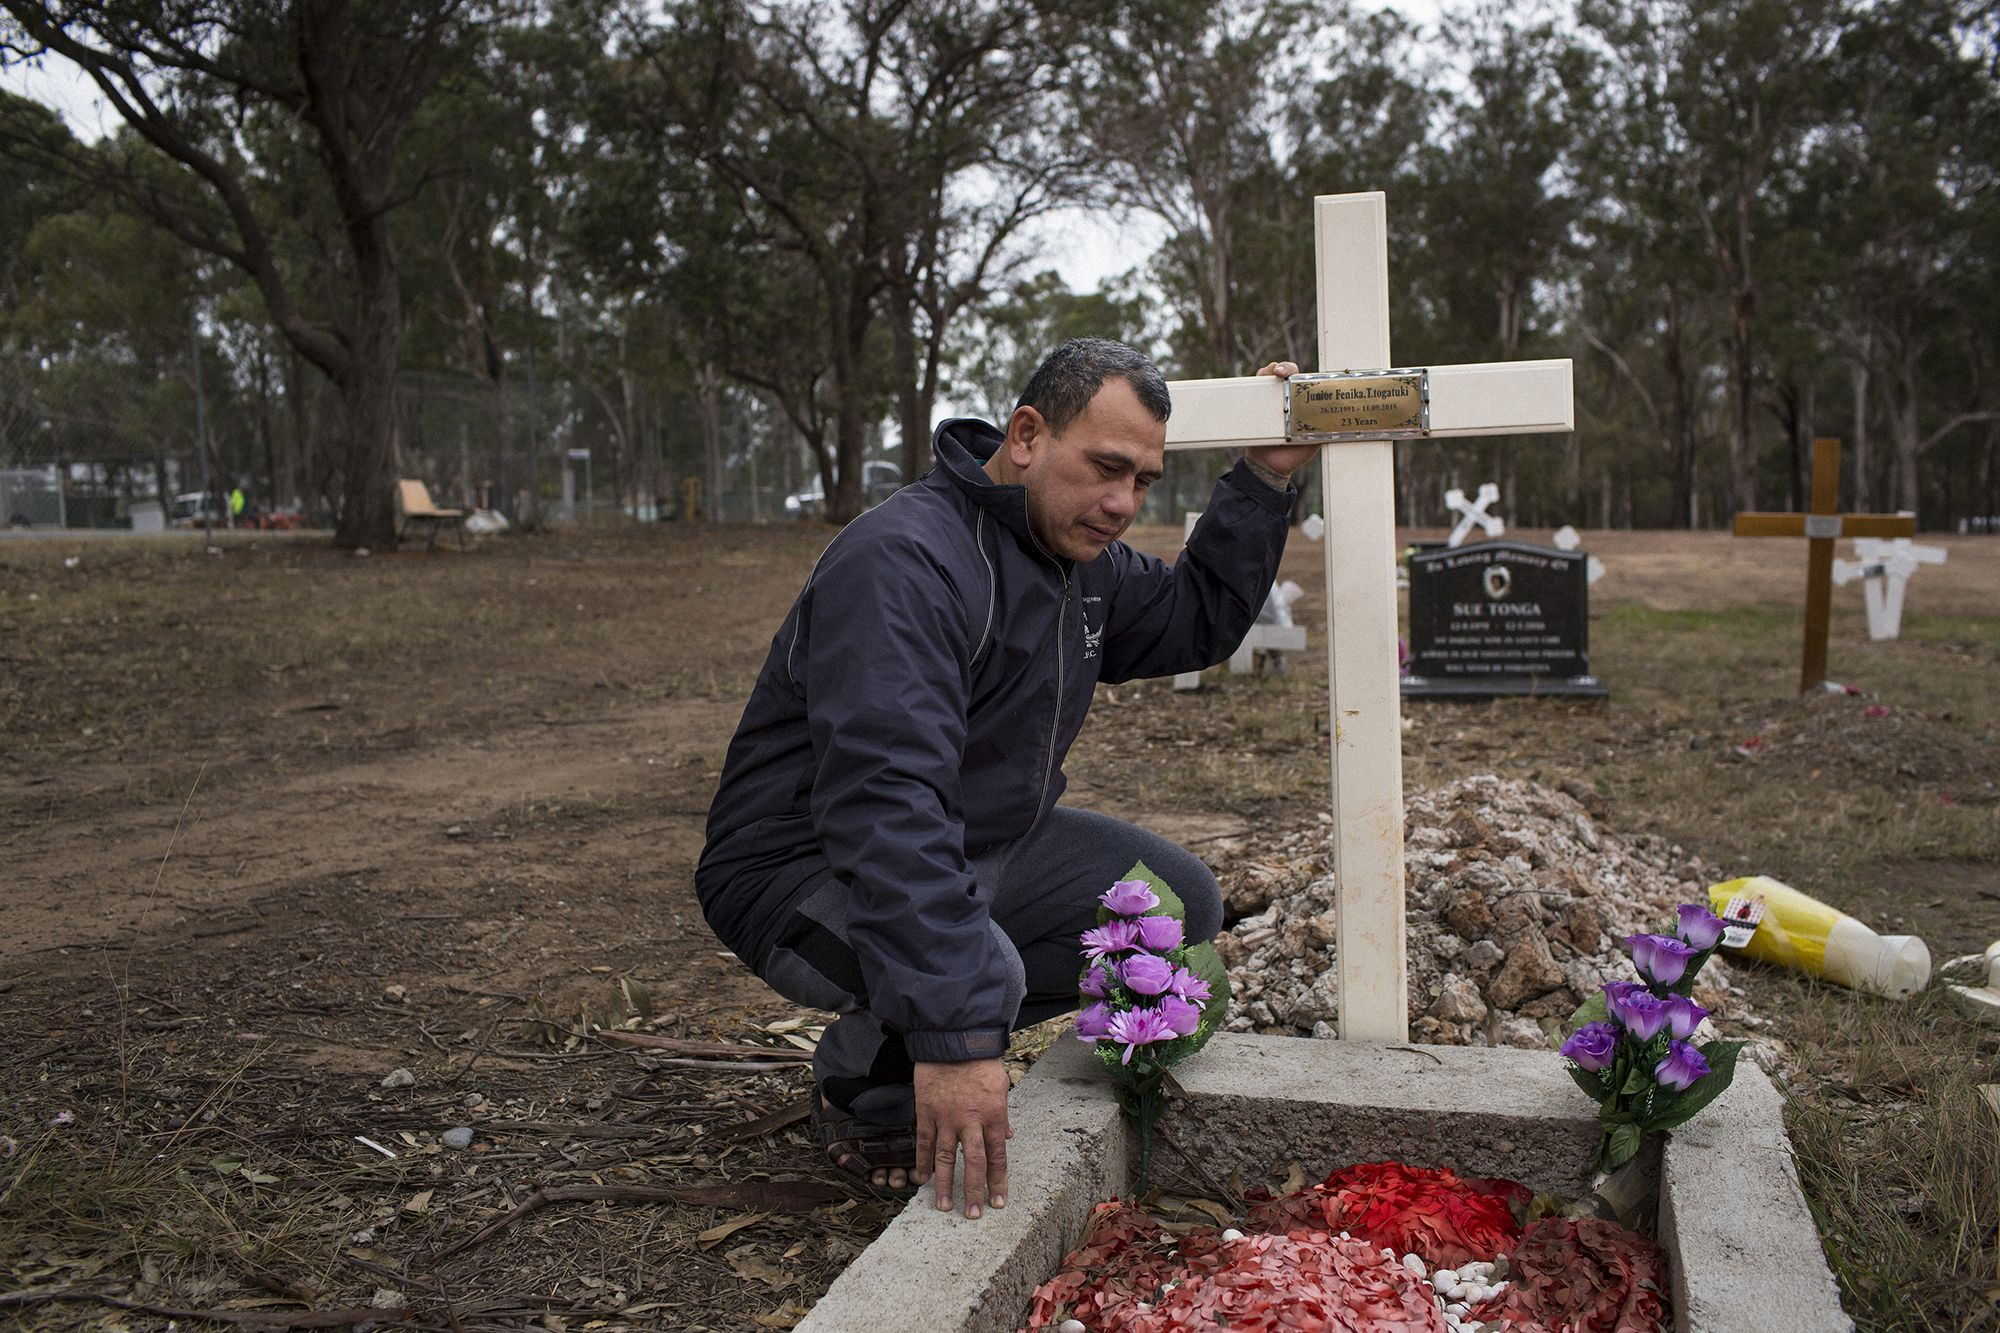 Vaea Togatuki, 48, visits the grave of his son, Junior, who died by suicide on September 11, 2015 while incarcerated in Goulburn's Correctional Center. Image by David Maurice Smith for The New York Times. Australia, 2018.